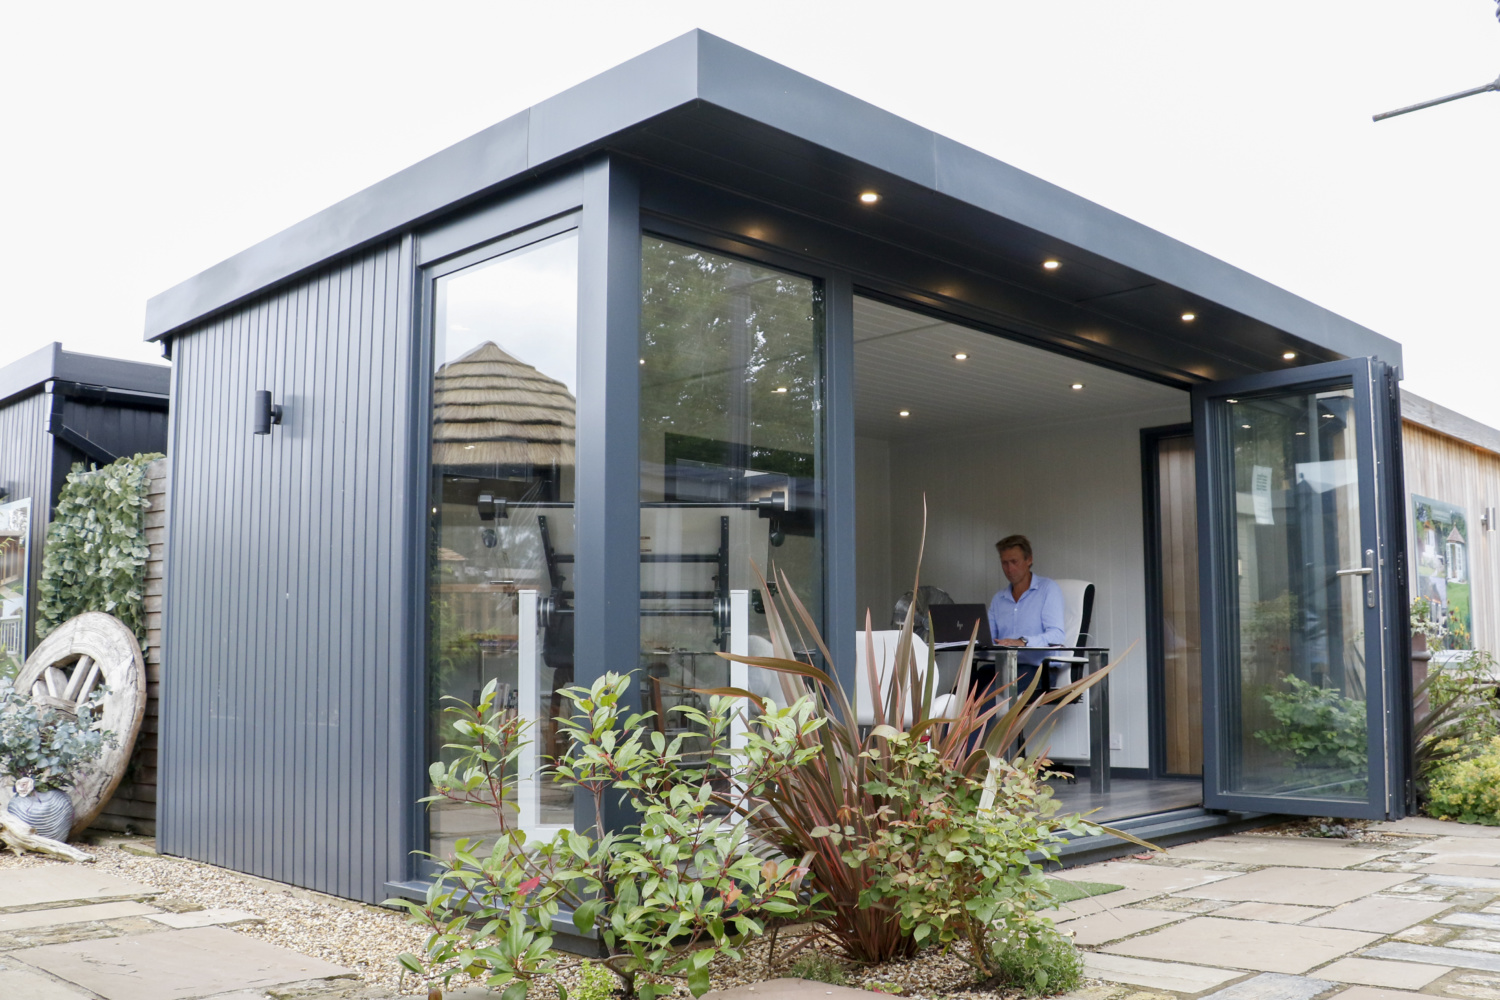 A contemporary garden office shows Tom Gadsby inside, sitting at a desk working. The garden office is painted wood with downlight along the front and planting at either side of the bifold door.